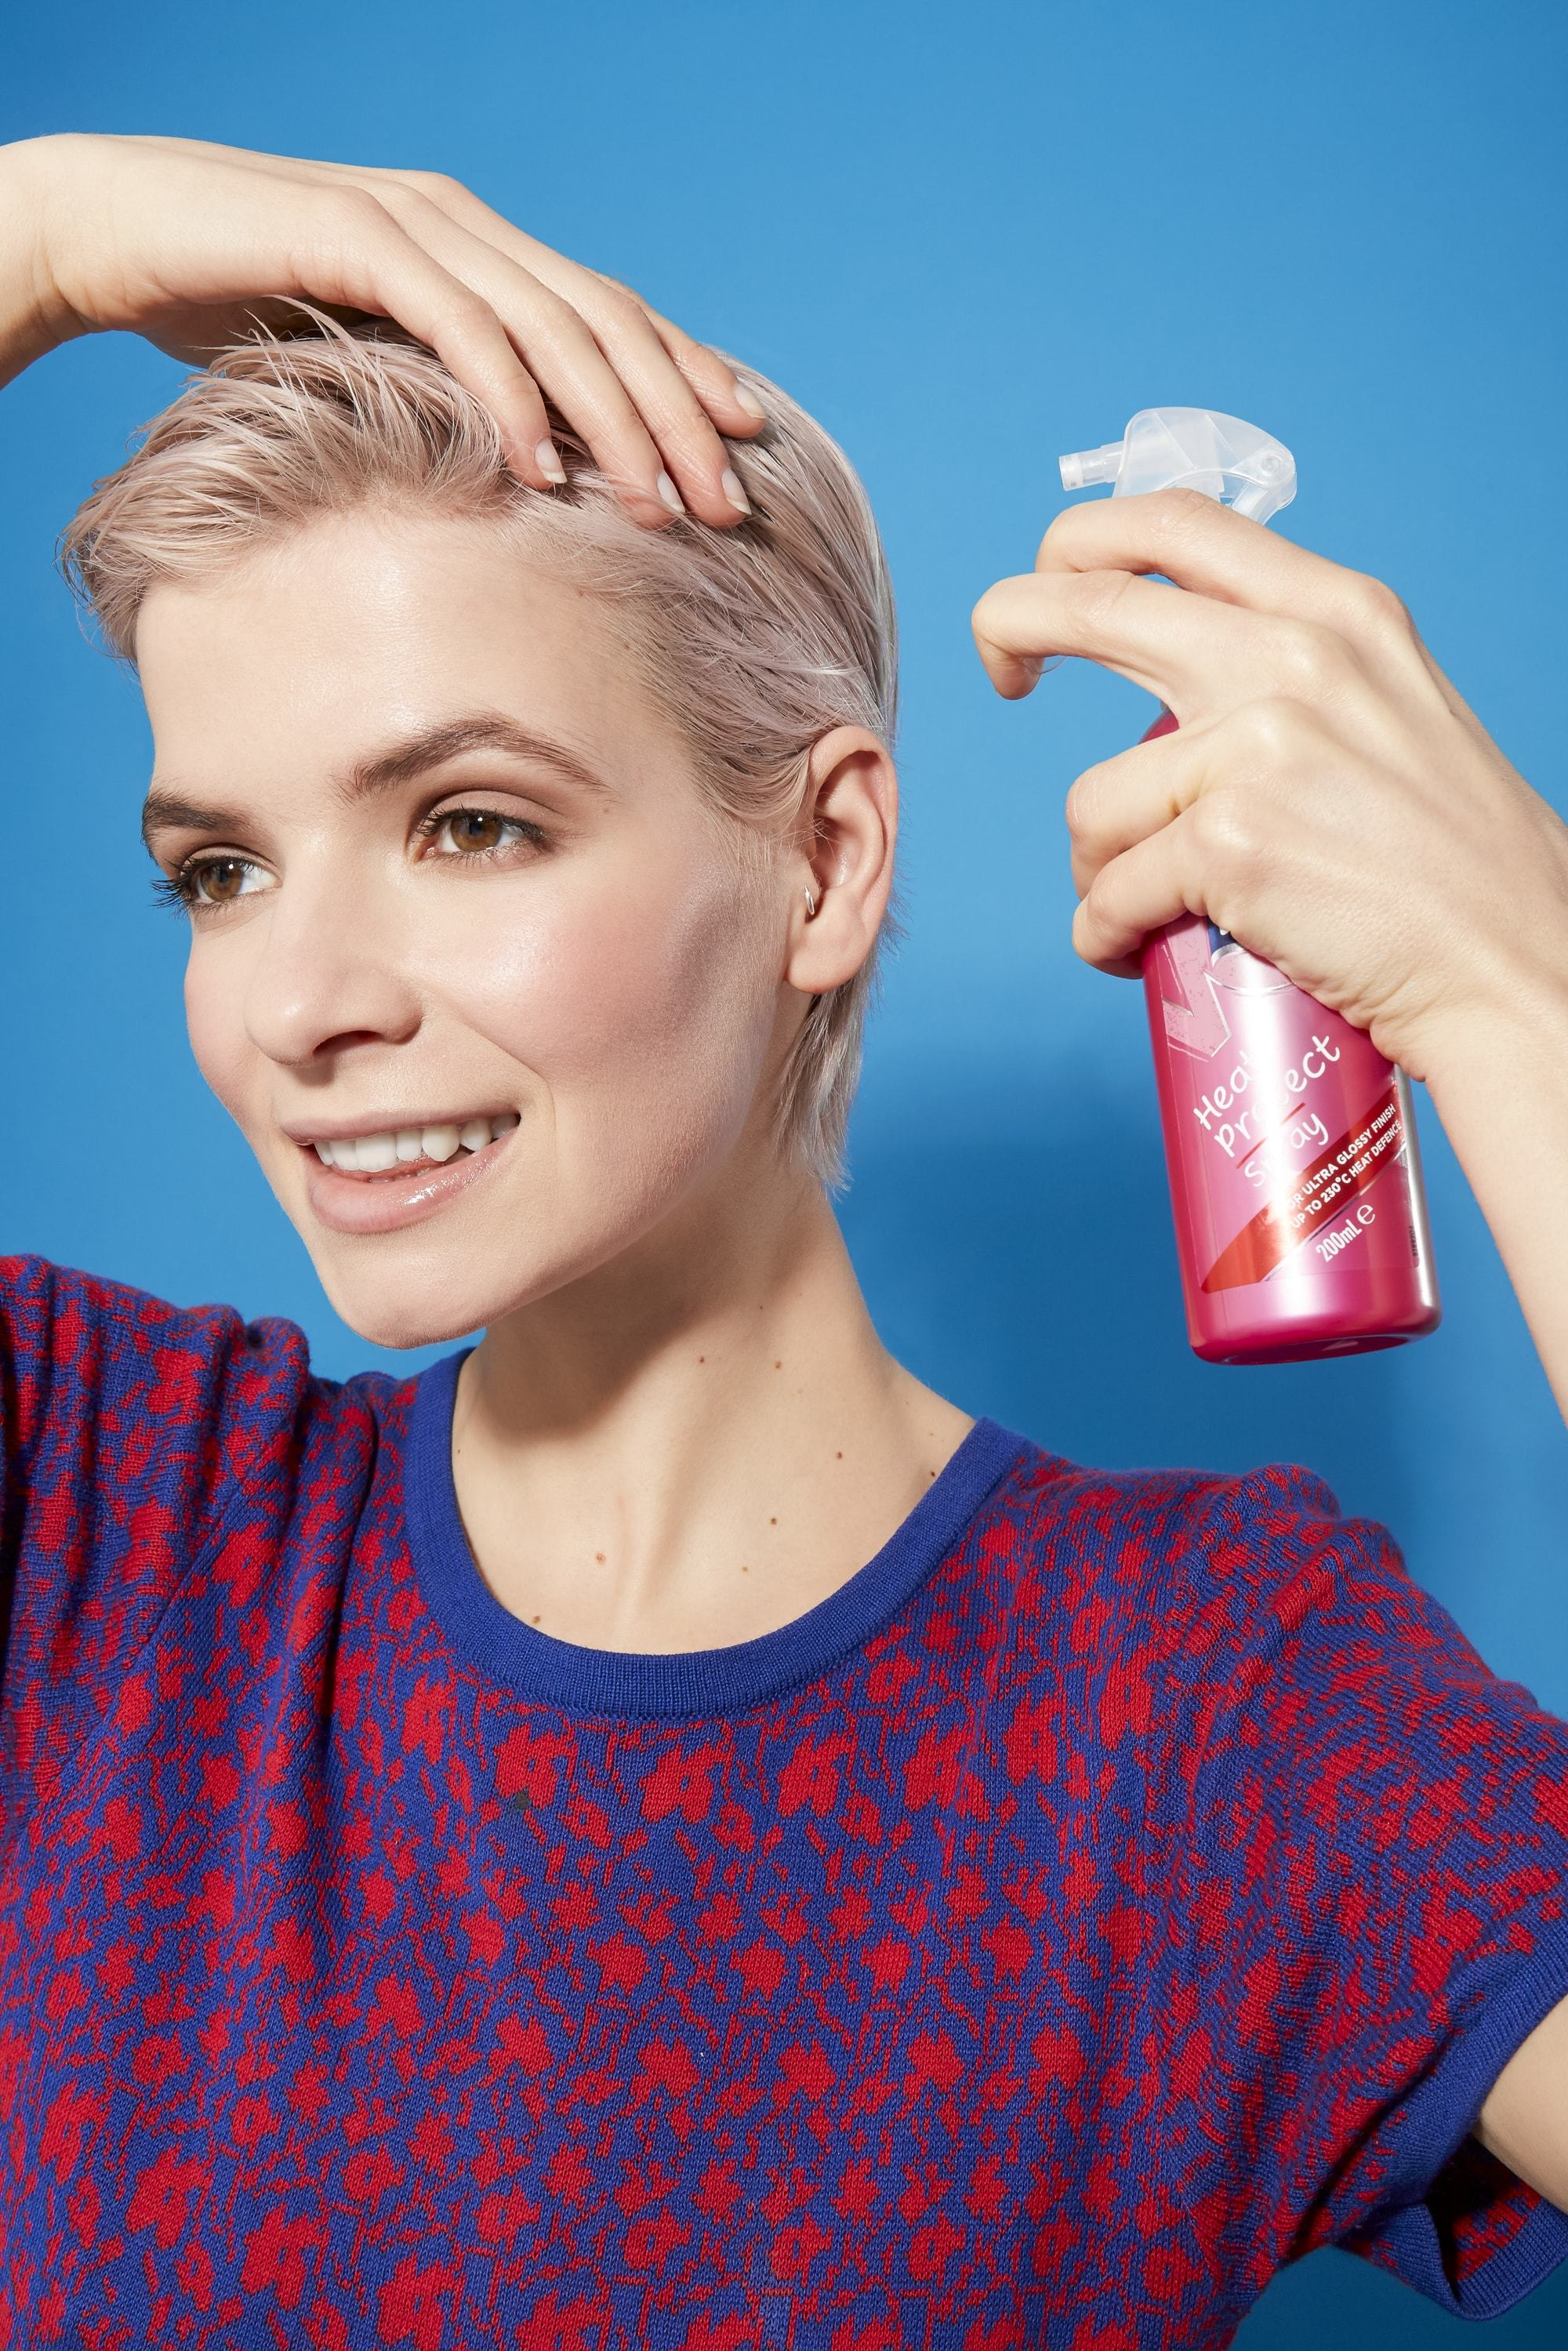 Bleach blonde woman holding her hair and spraying VO5 heat protect spray